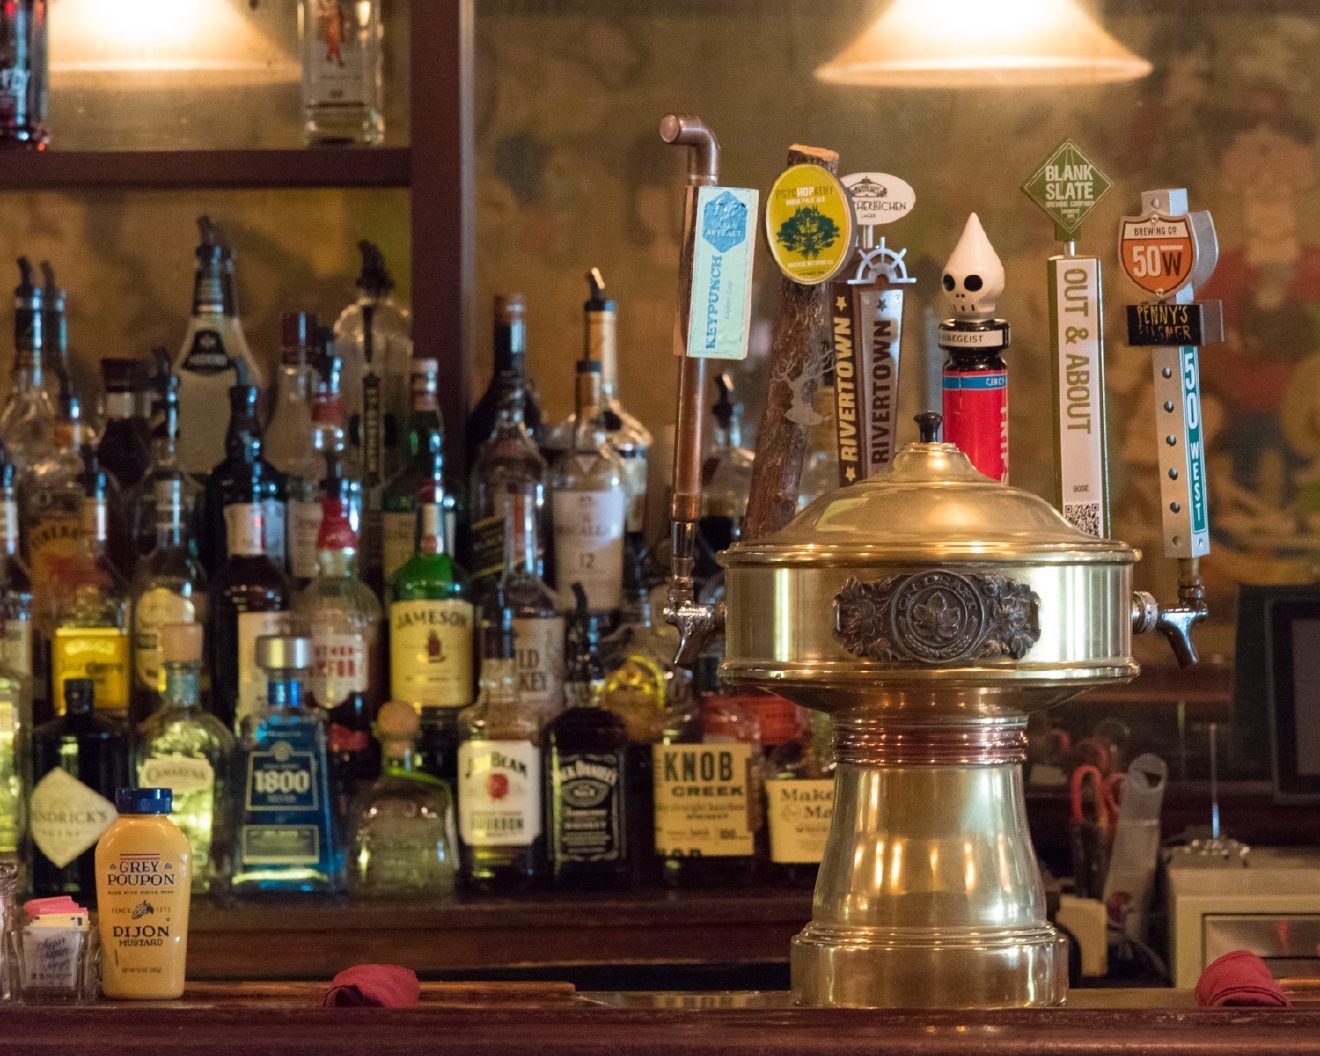 Arthur's Café has only served local beers on tap since 2012. / Image: Phil Armstrong, Cincinnati Refined